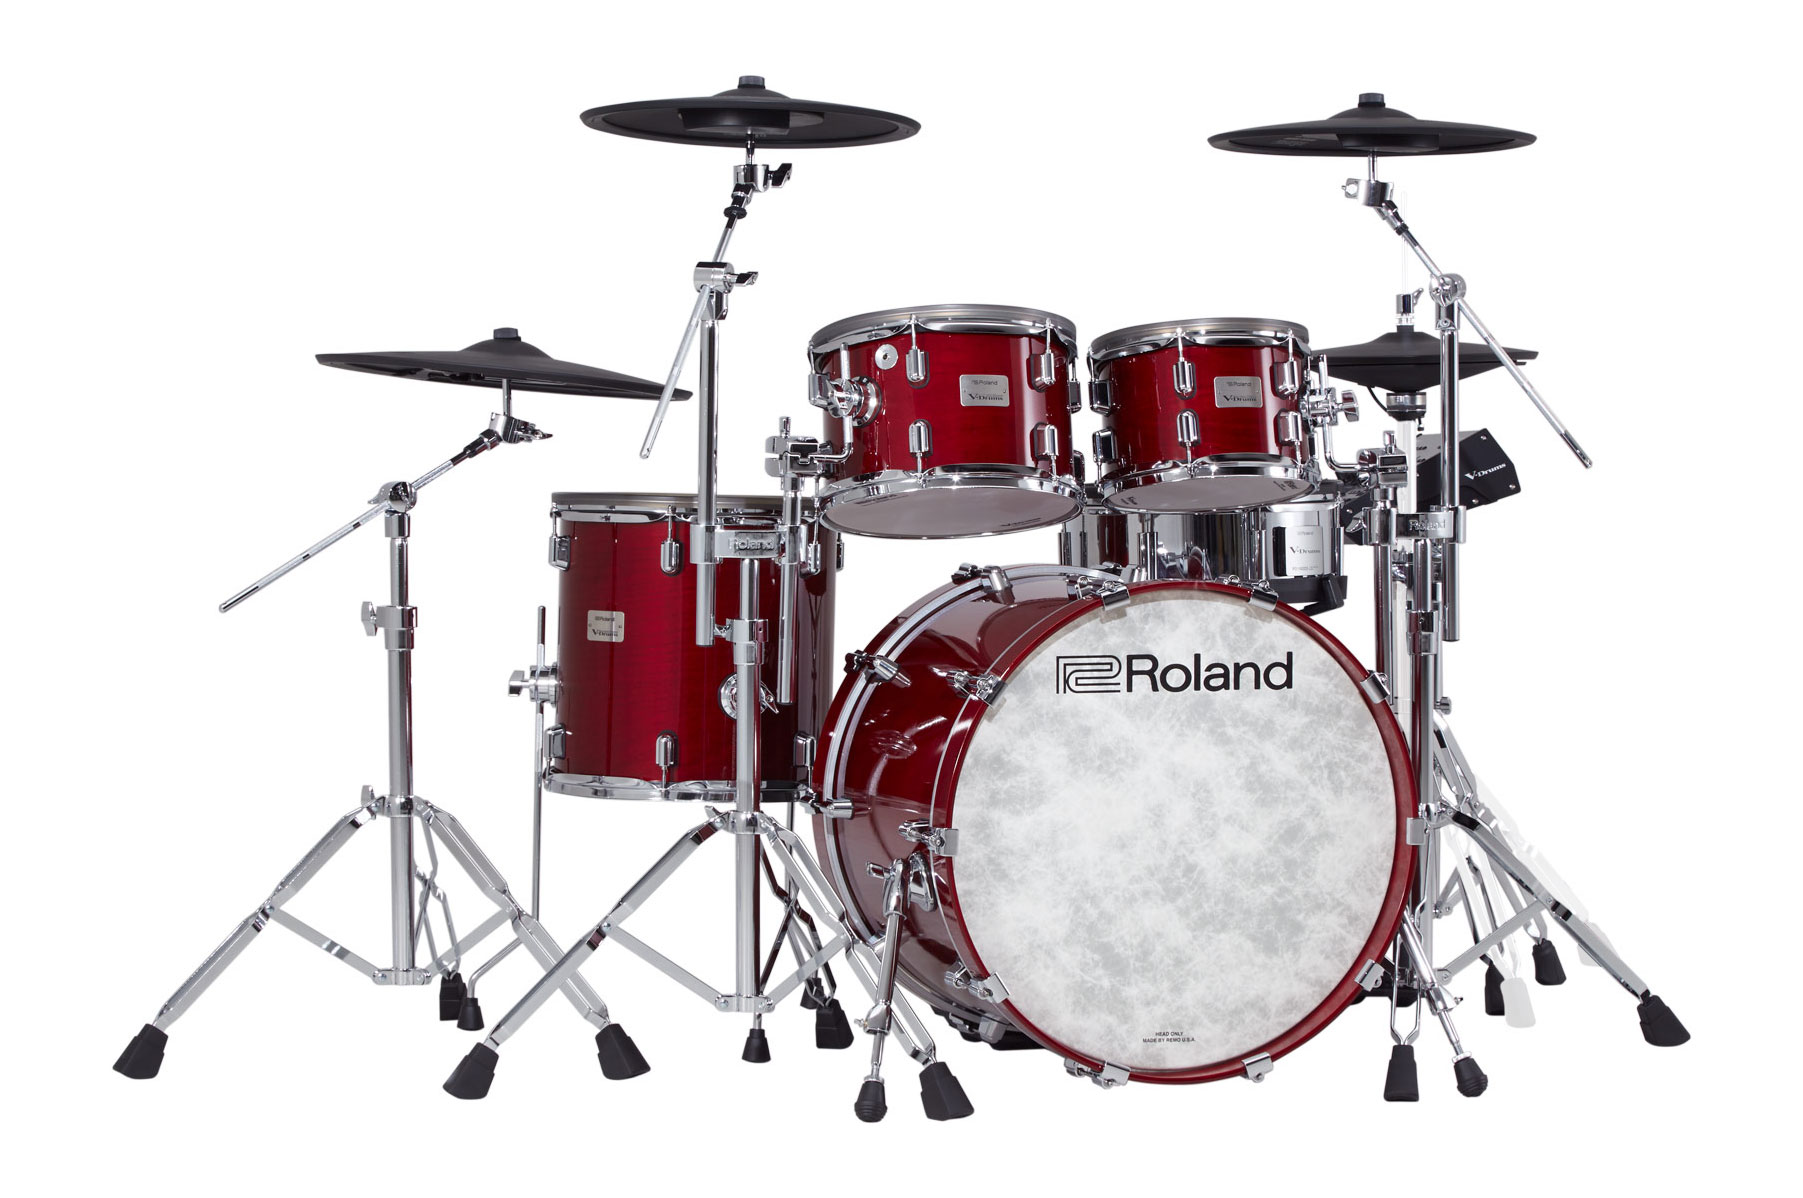 Roland VAD 7 Series   Products